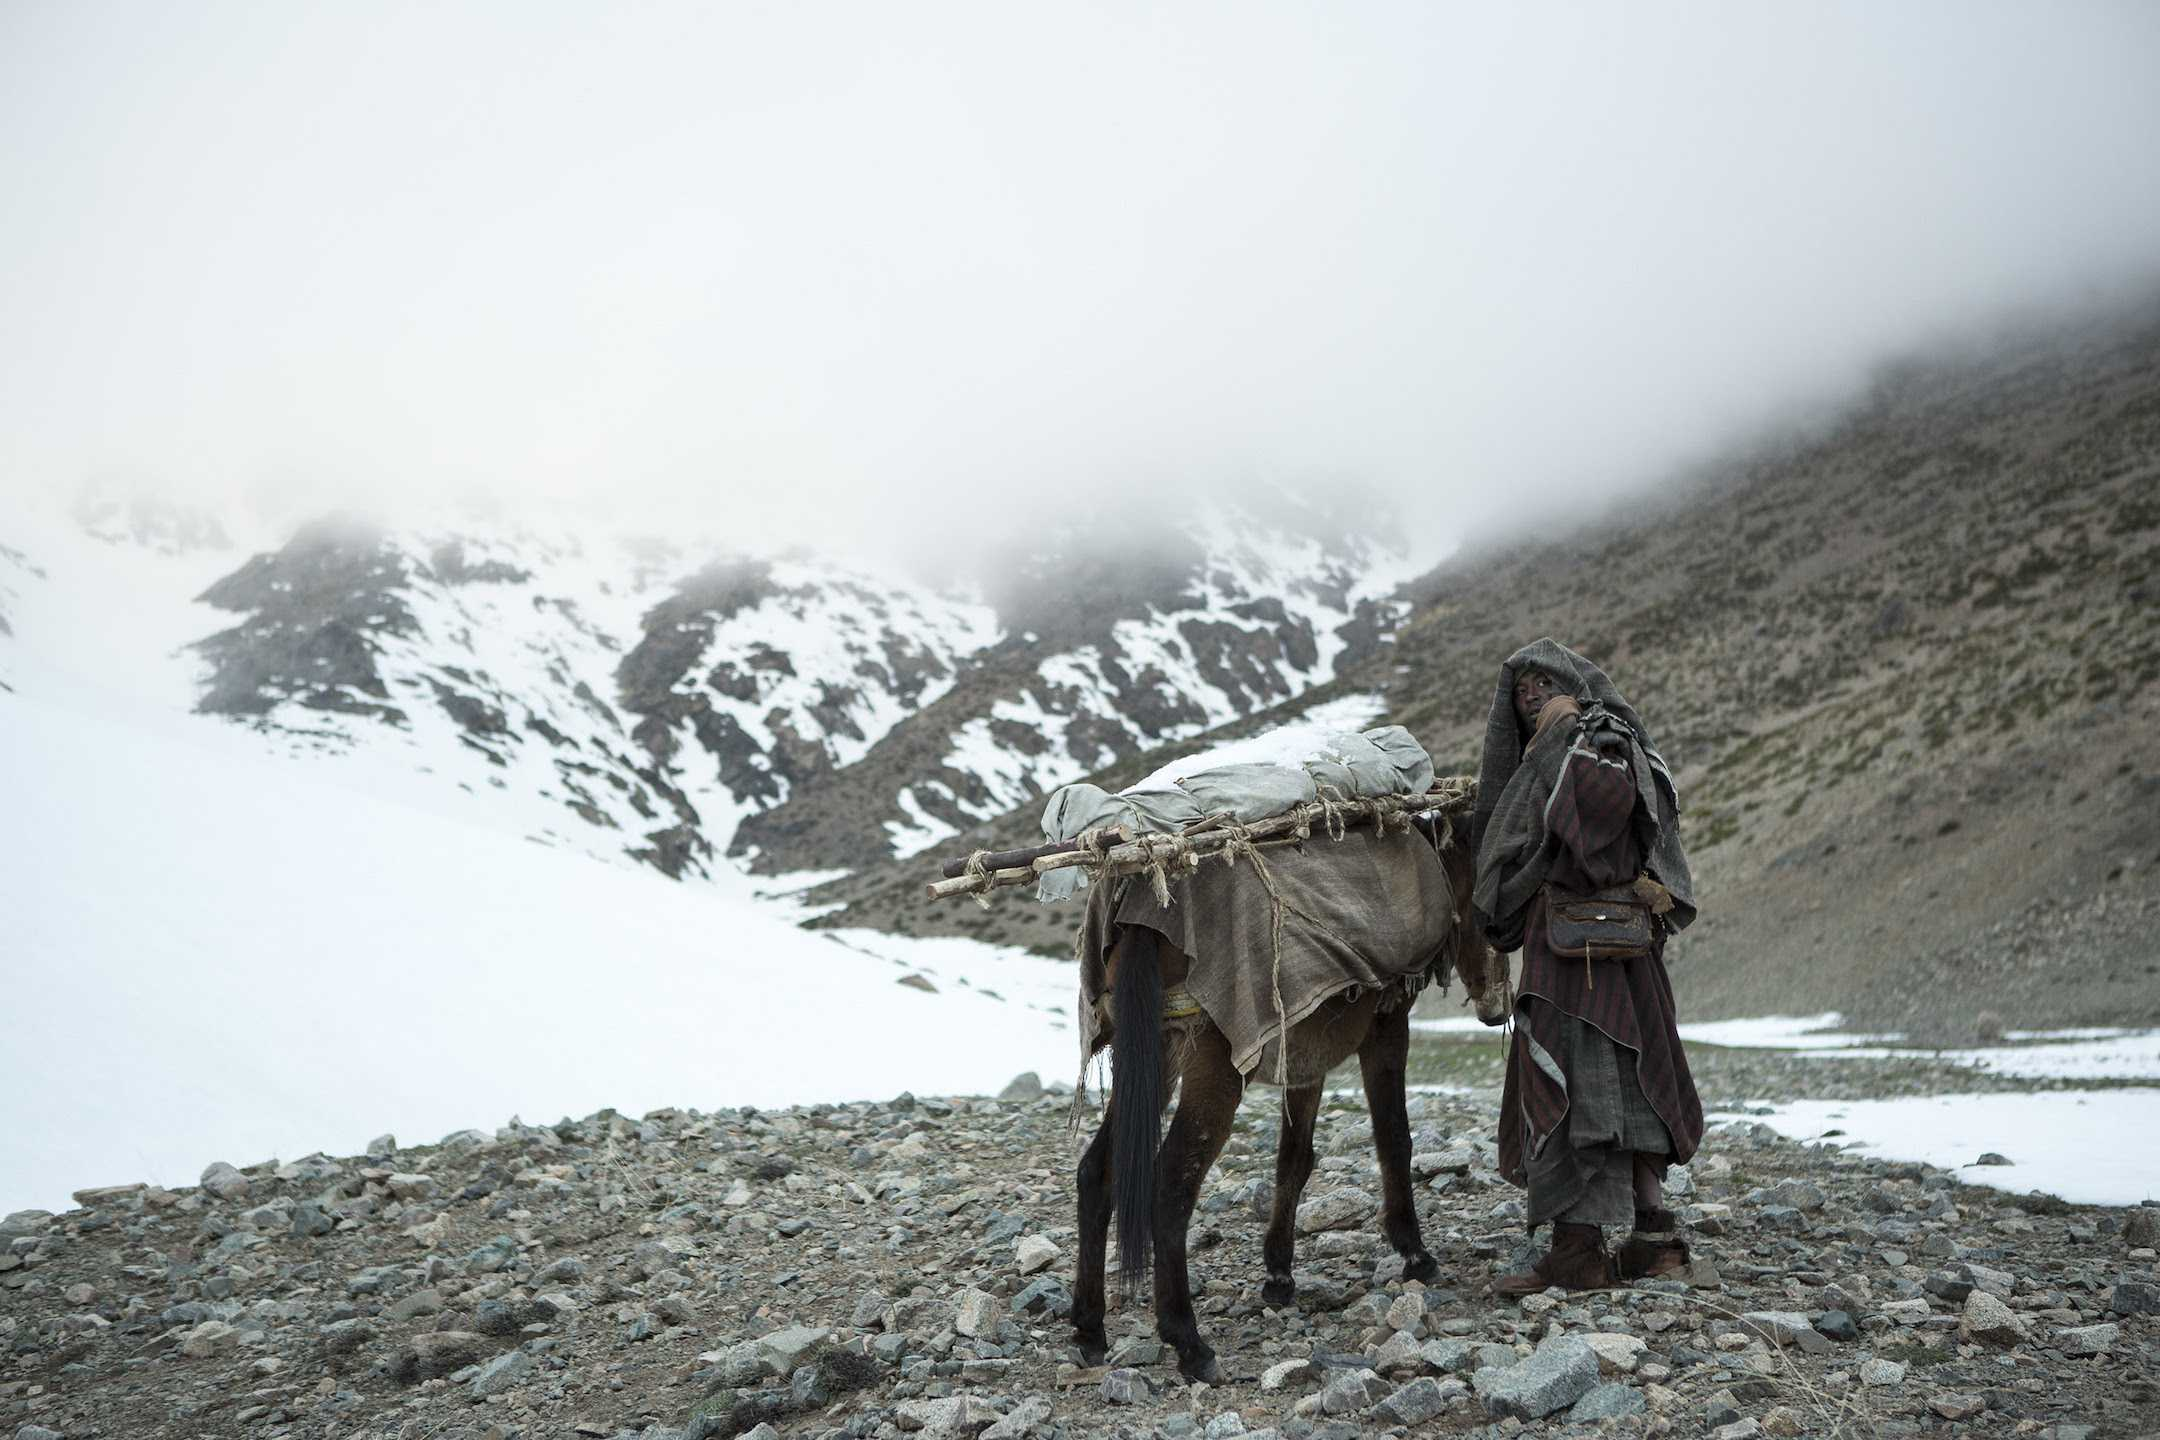 Mimosas, a film directed by Oliver Laxe, is a winner of the Critics' Week Grand Prize at the Cannes Film Festival. It chronicles what a caravan faces while carrying a dying sheikh into the Moroccan Atlas Mountains.